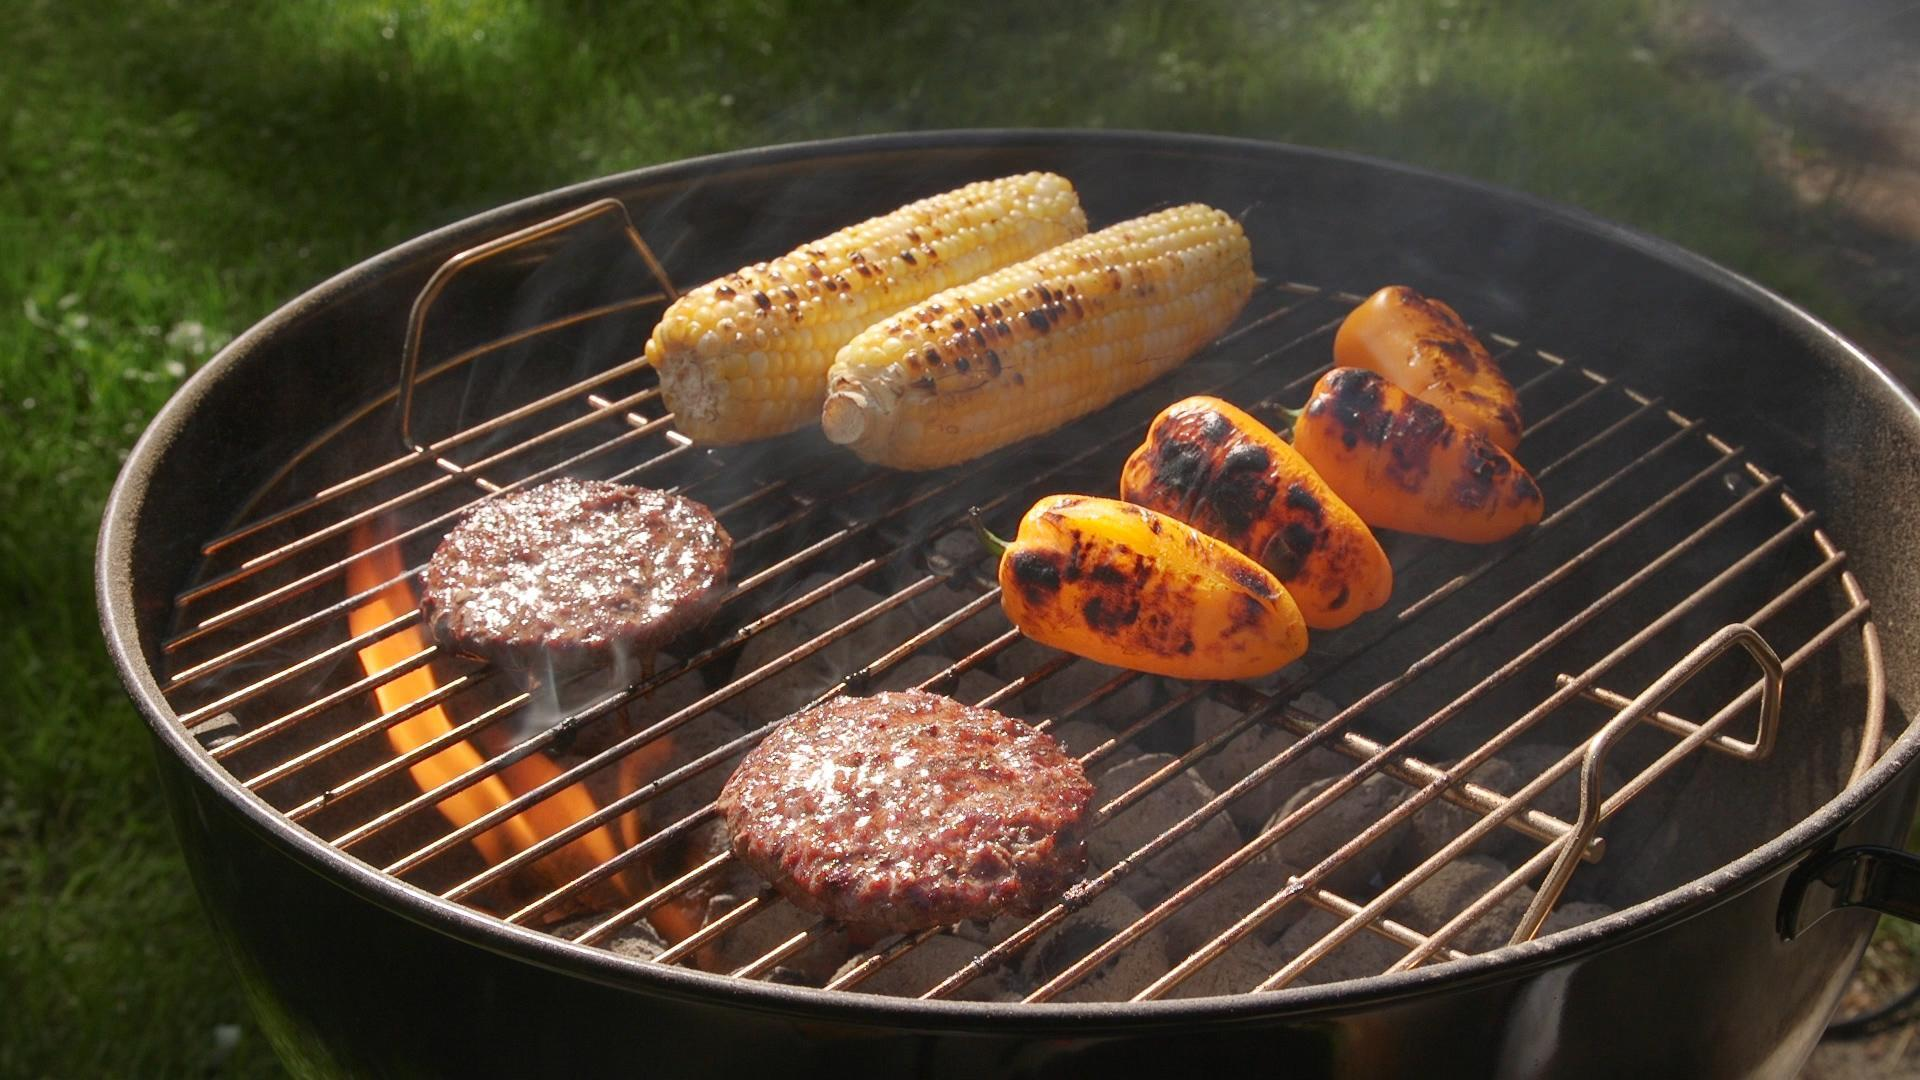 How to Cook on a Charcoal Grill - Consumer Reports